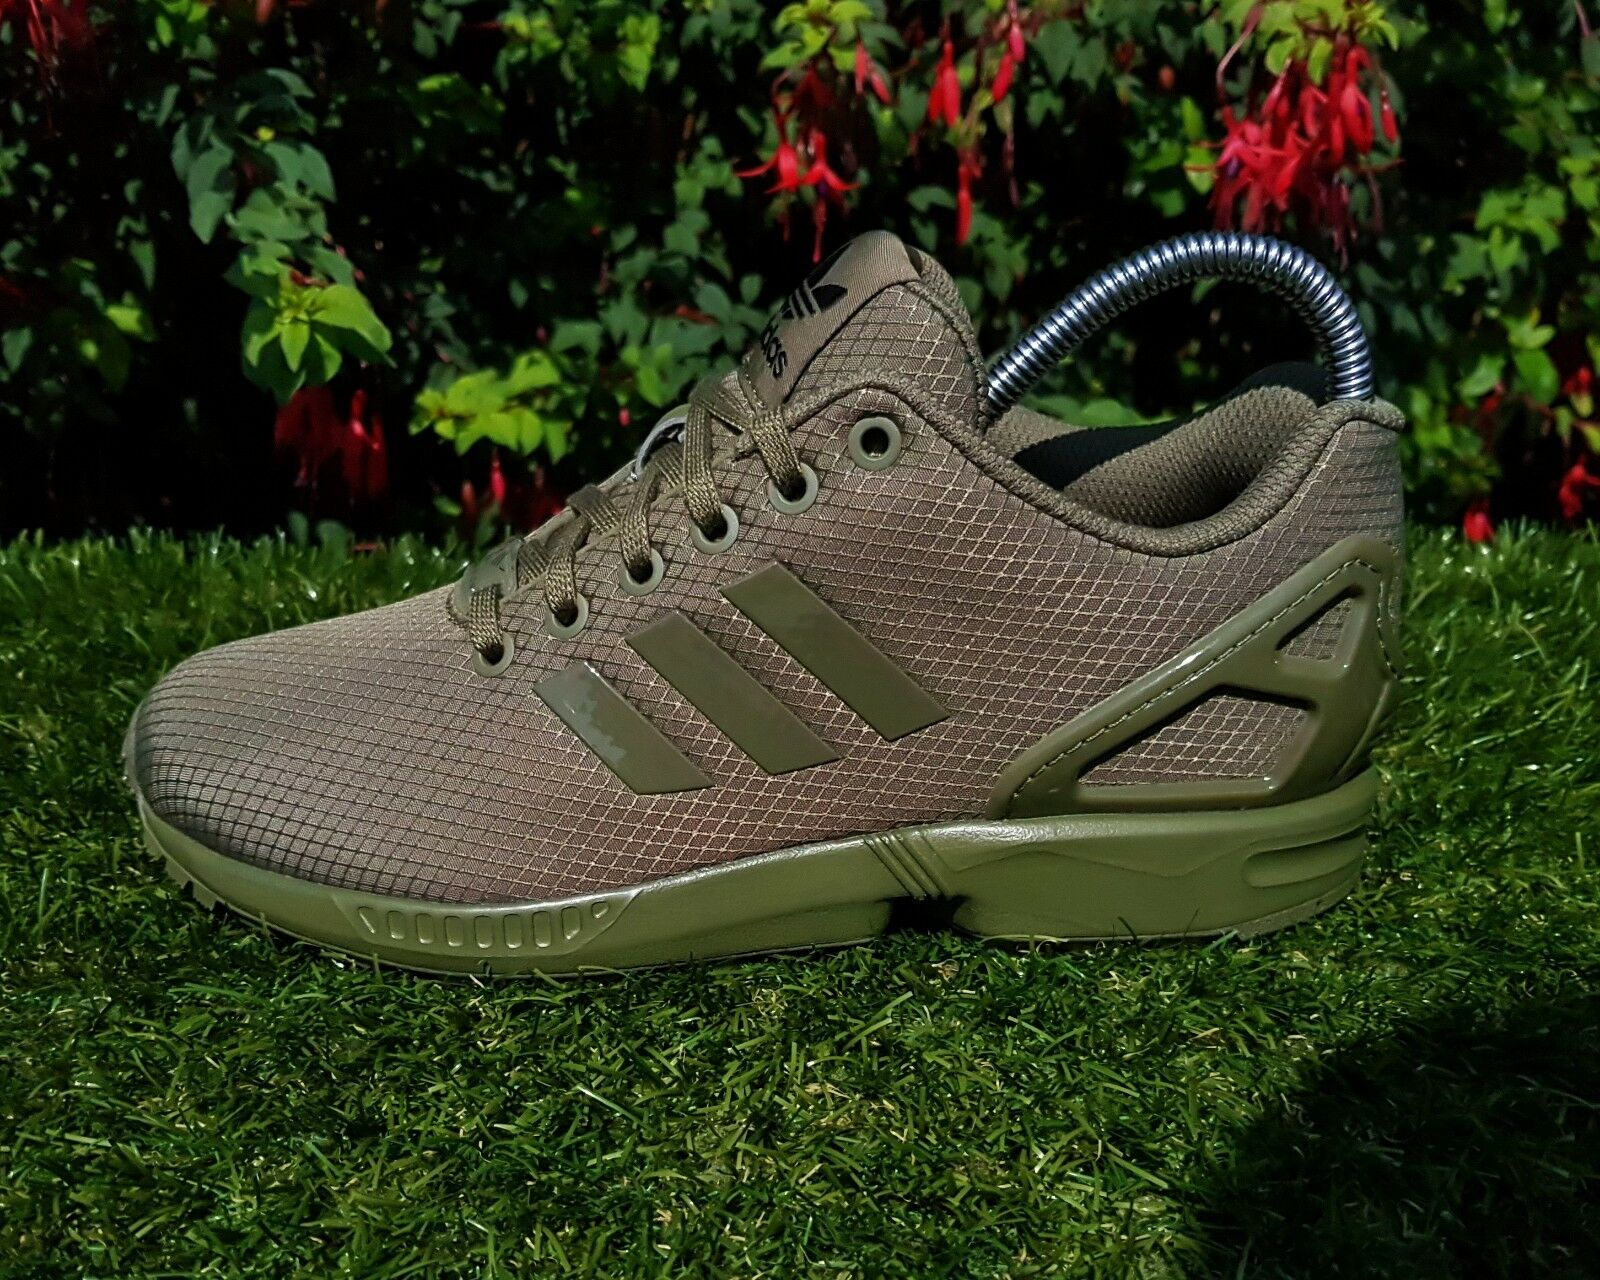 BNWB Genuine Adidas Originals ZX Flux ® Ripstop Olive 10 Cargo Trainers UK Size 10 Olive 698a6b